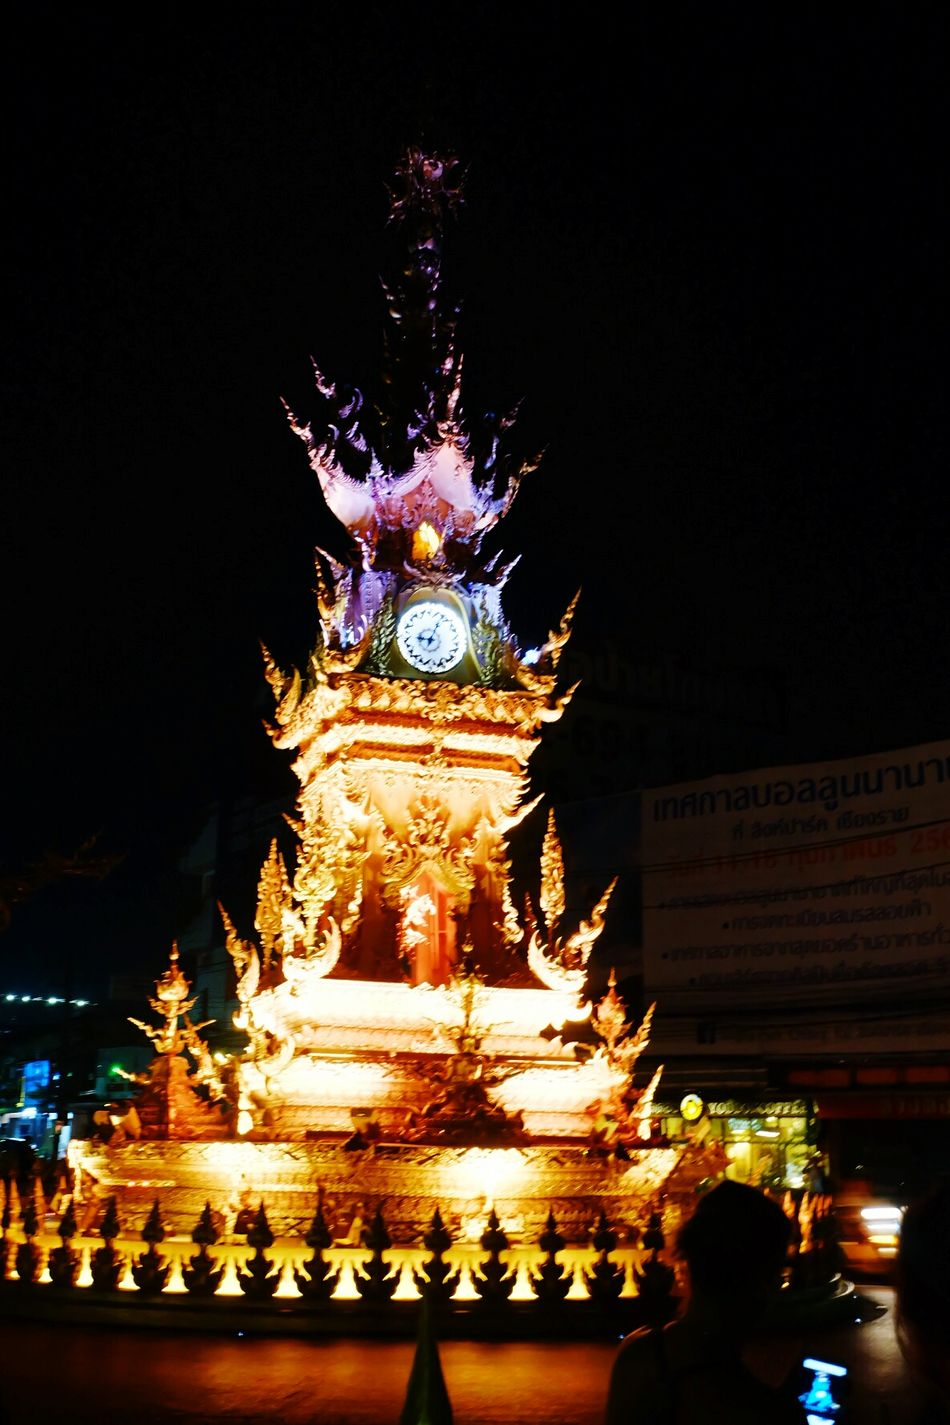 "Popular Destination in ""THAILAND"" Night Celebration Illuminated Celebration Event Low Angle View Travel Destinations Traditional Festival Architecture Arts Culture And Entertainment Holiday - Event Outdoors Christmas Decoration People"